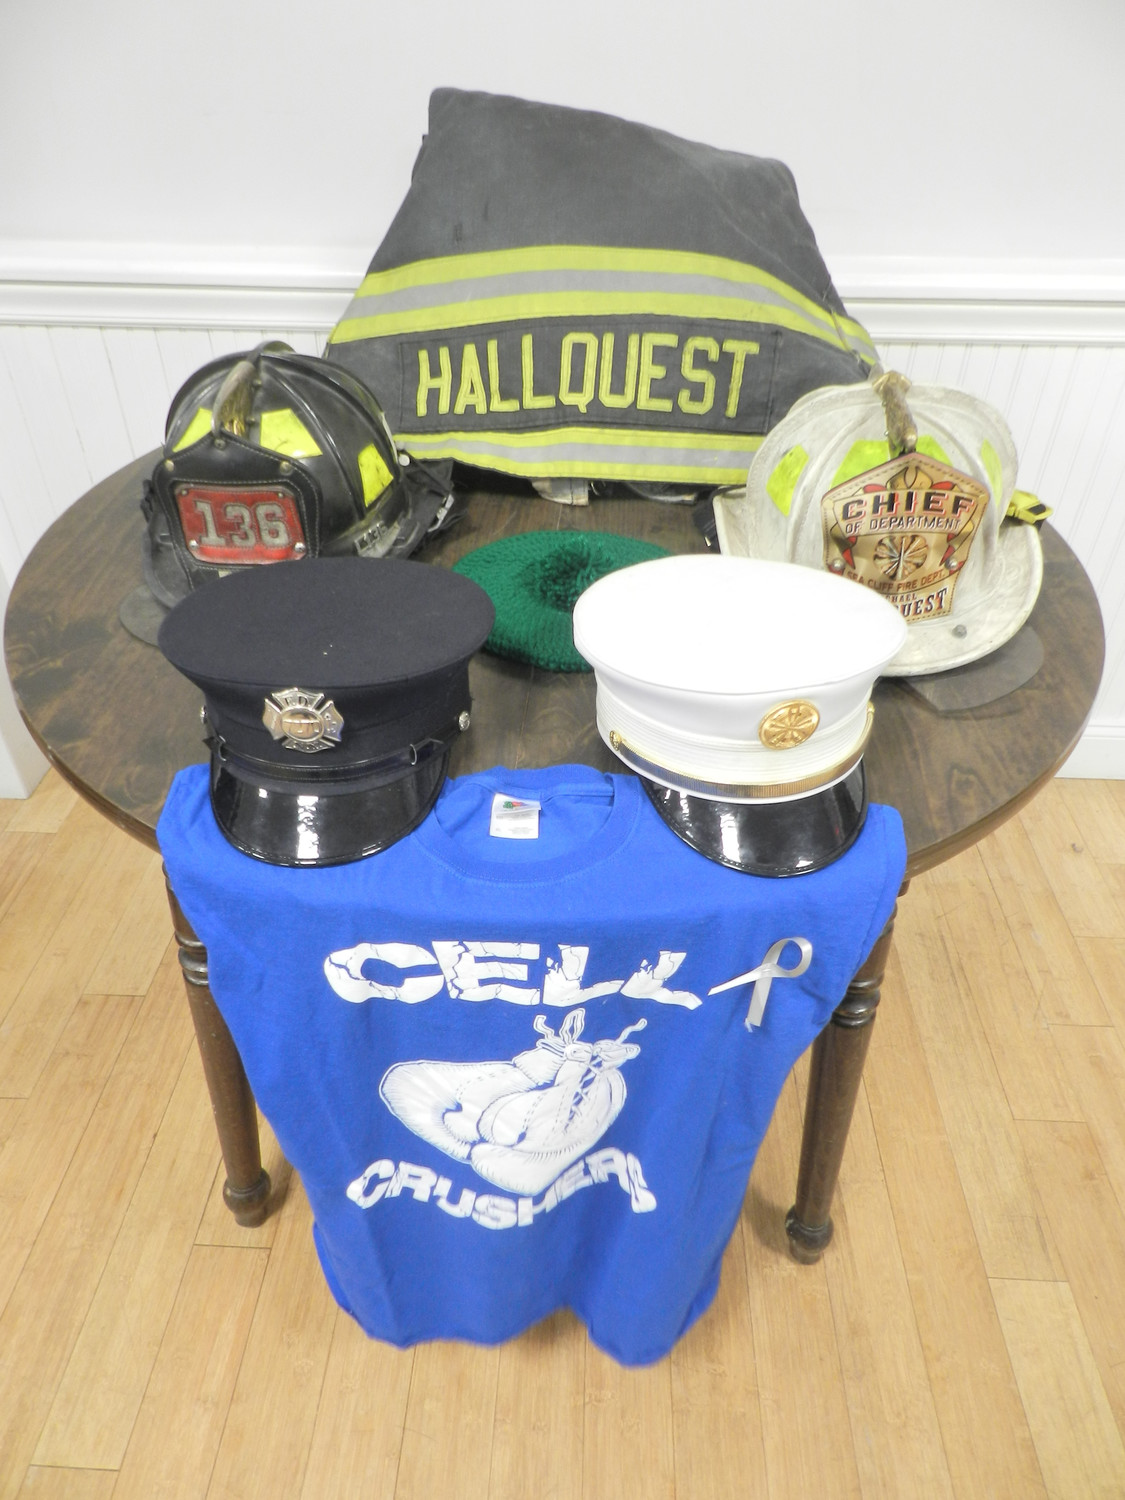 Hallquest's personal effects, including his firefighter's jacket, helmets and caps, were on display at the Sea Cliff firehouse after his wake.